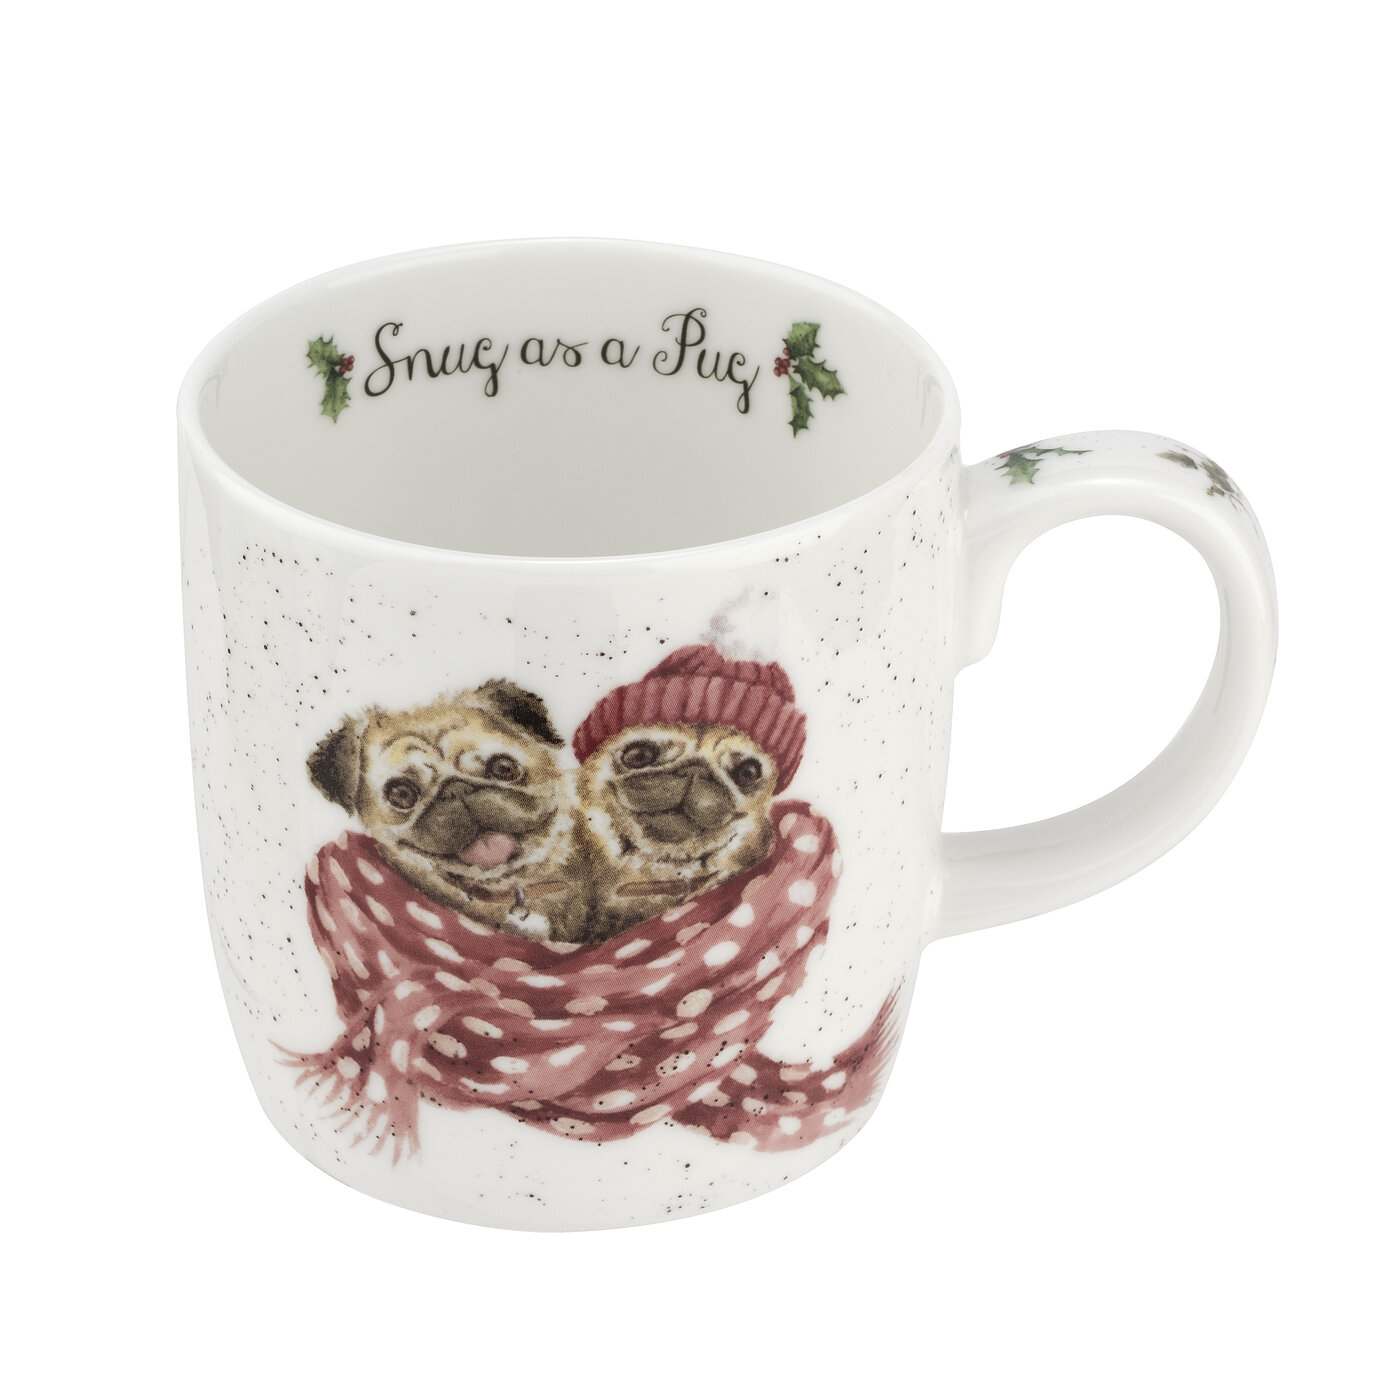 Royal Worcester Wrendale Designs 14oz Snug As a Pug (Dog) image number 0